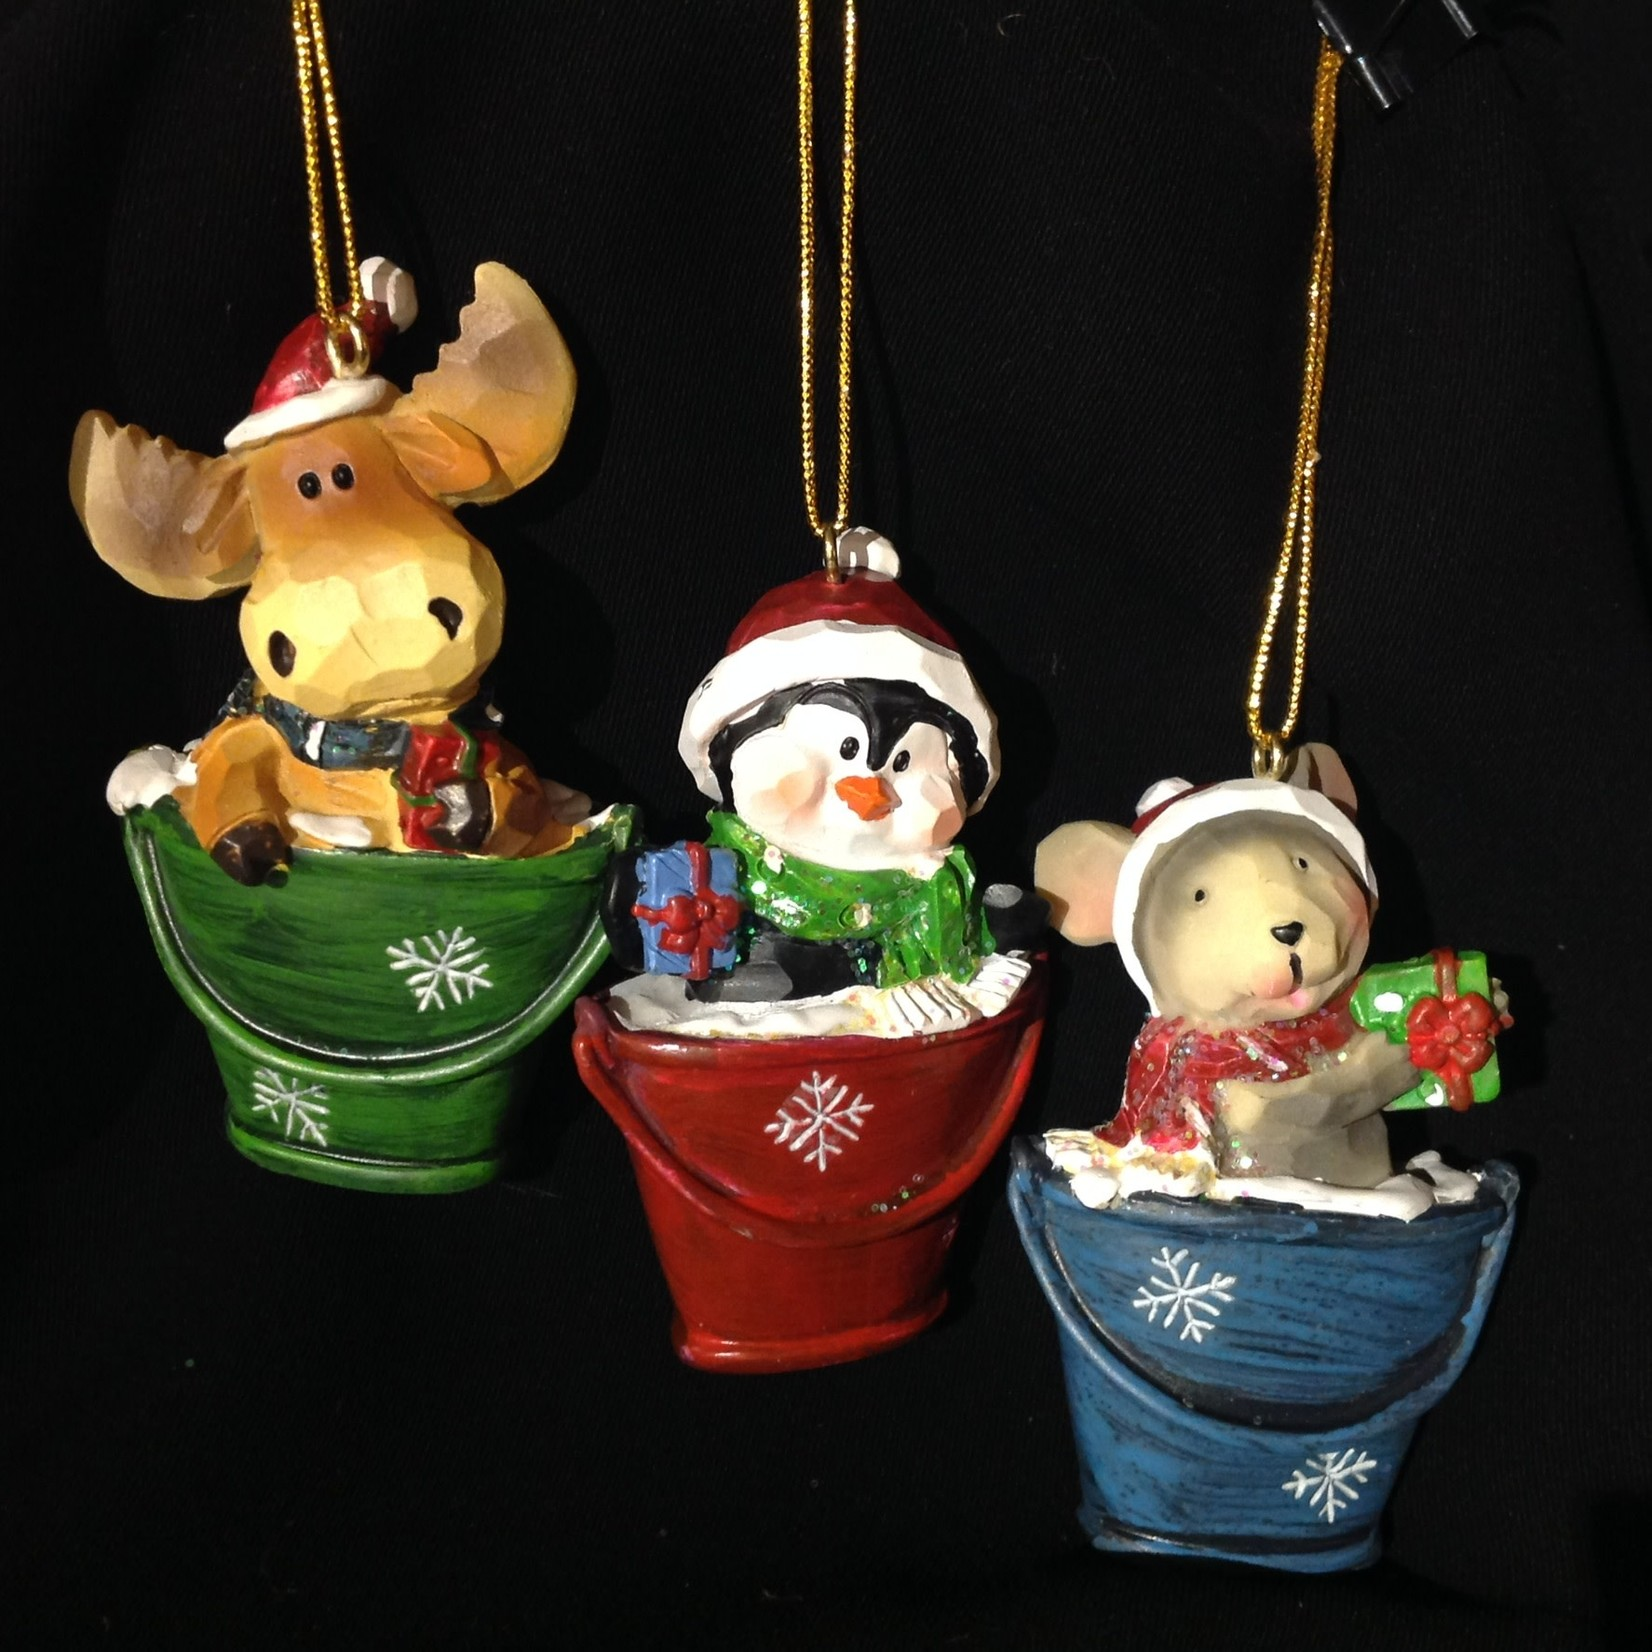 Animals in Pail 2A (no more moose)